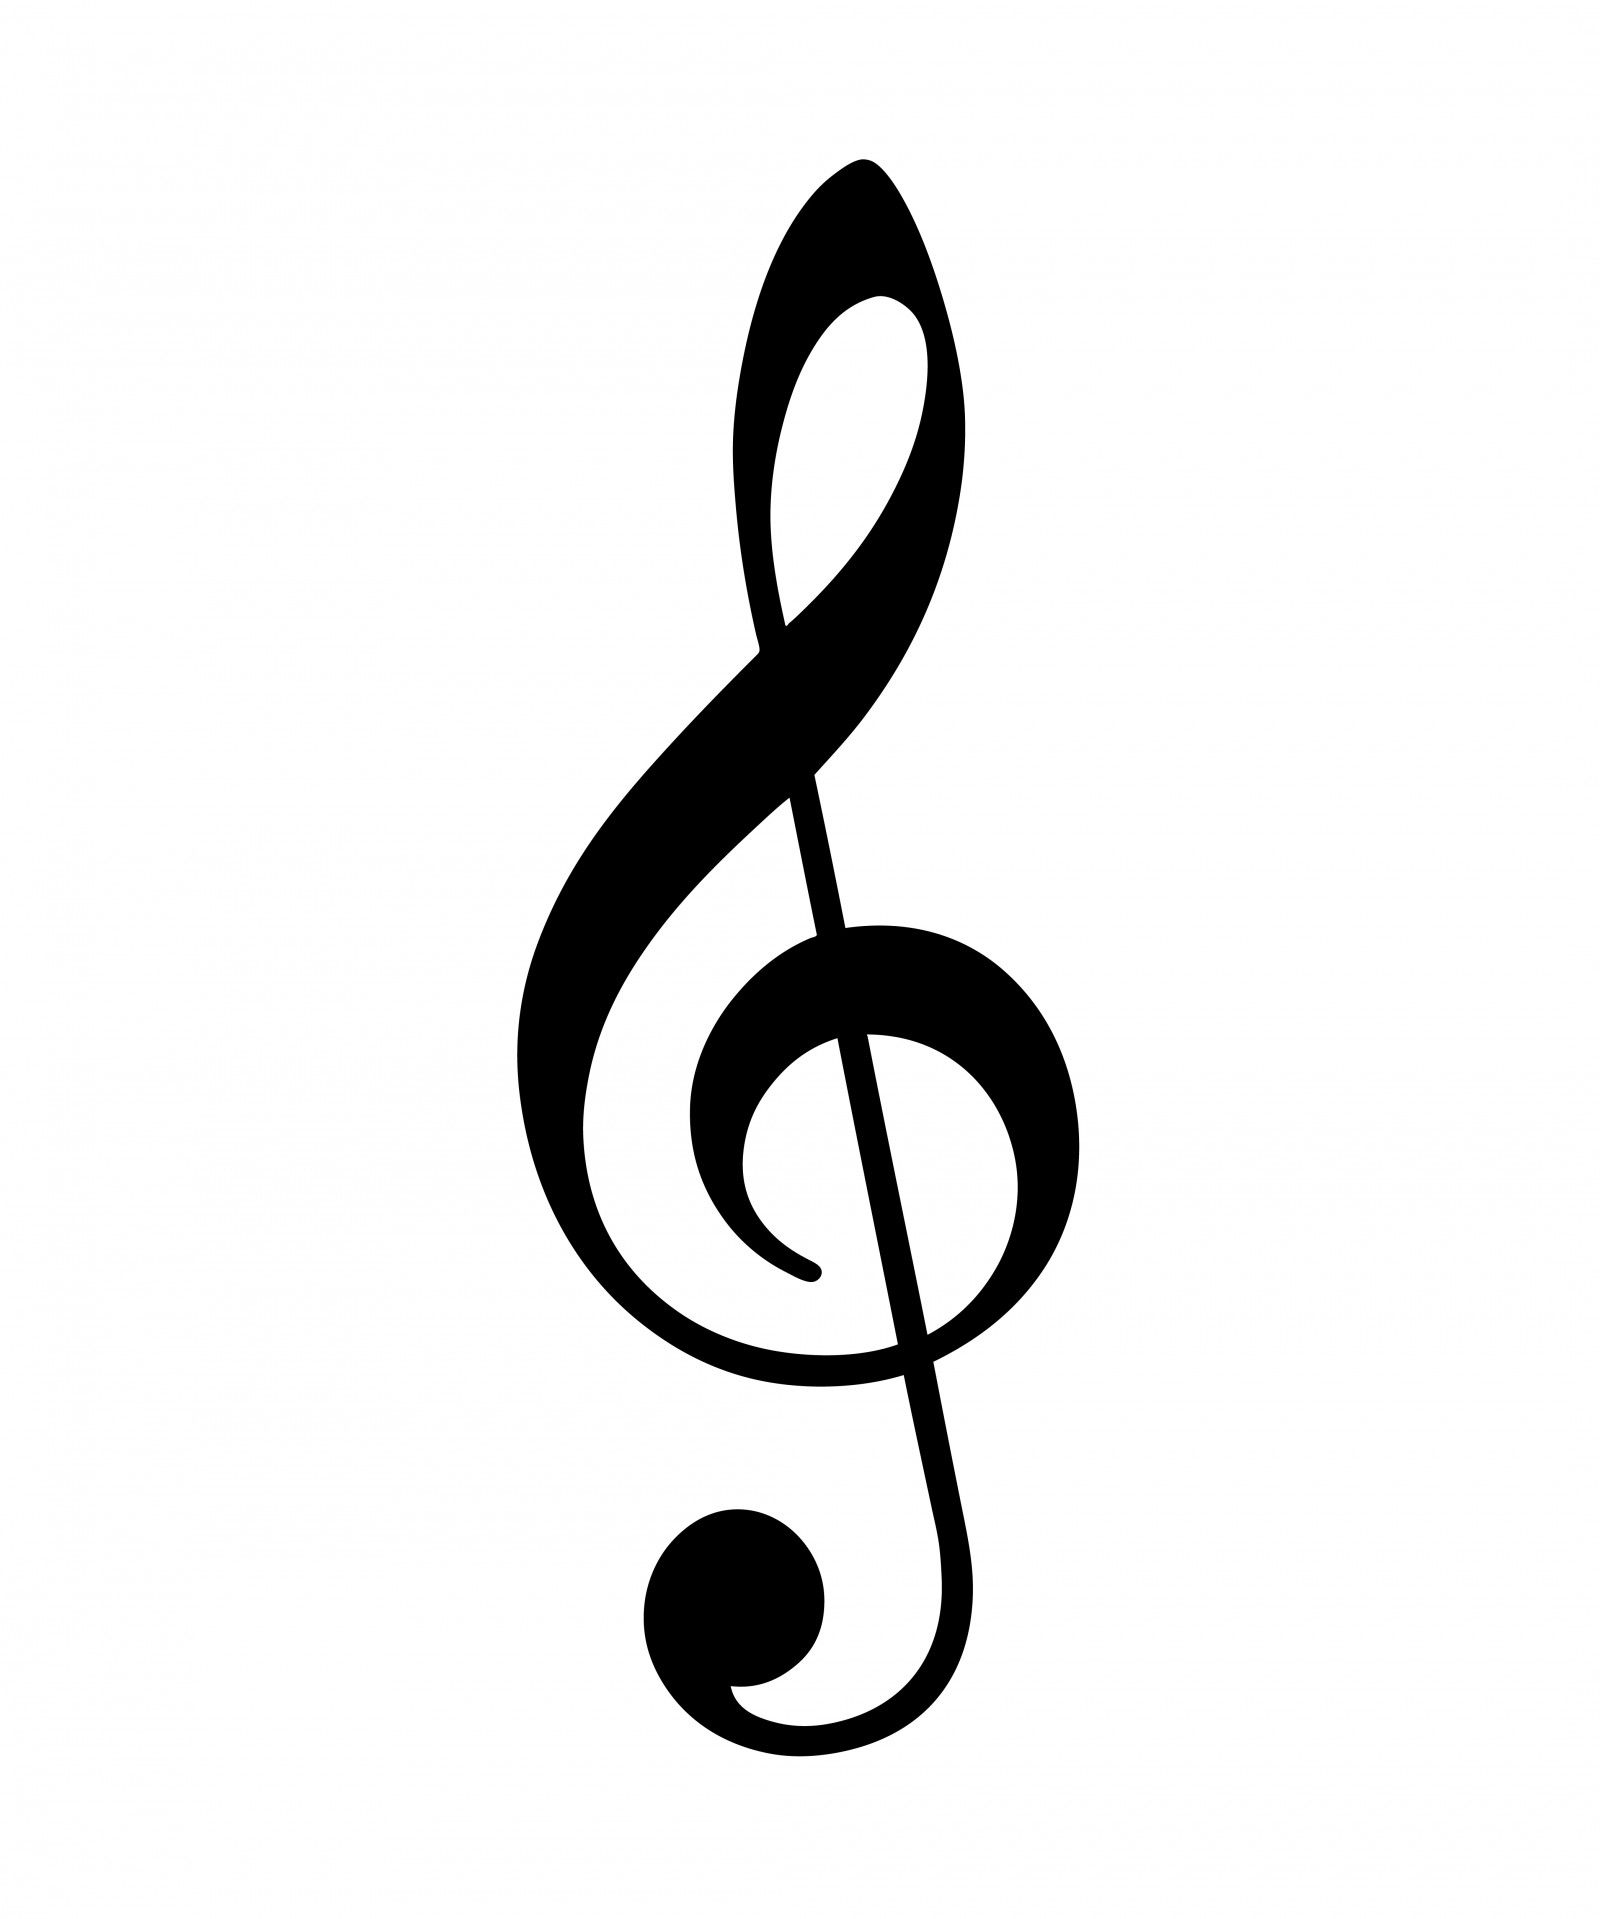 Music notes treble clef. Clipart backgrounds sheet